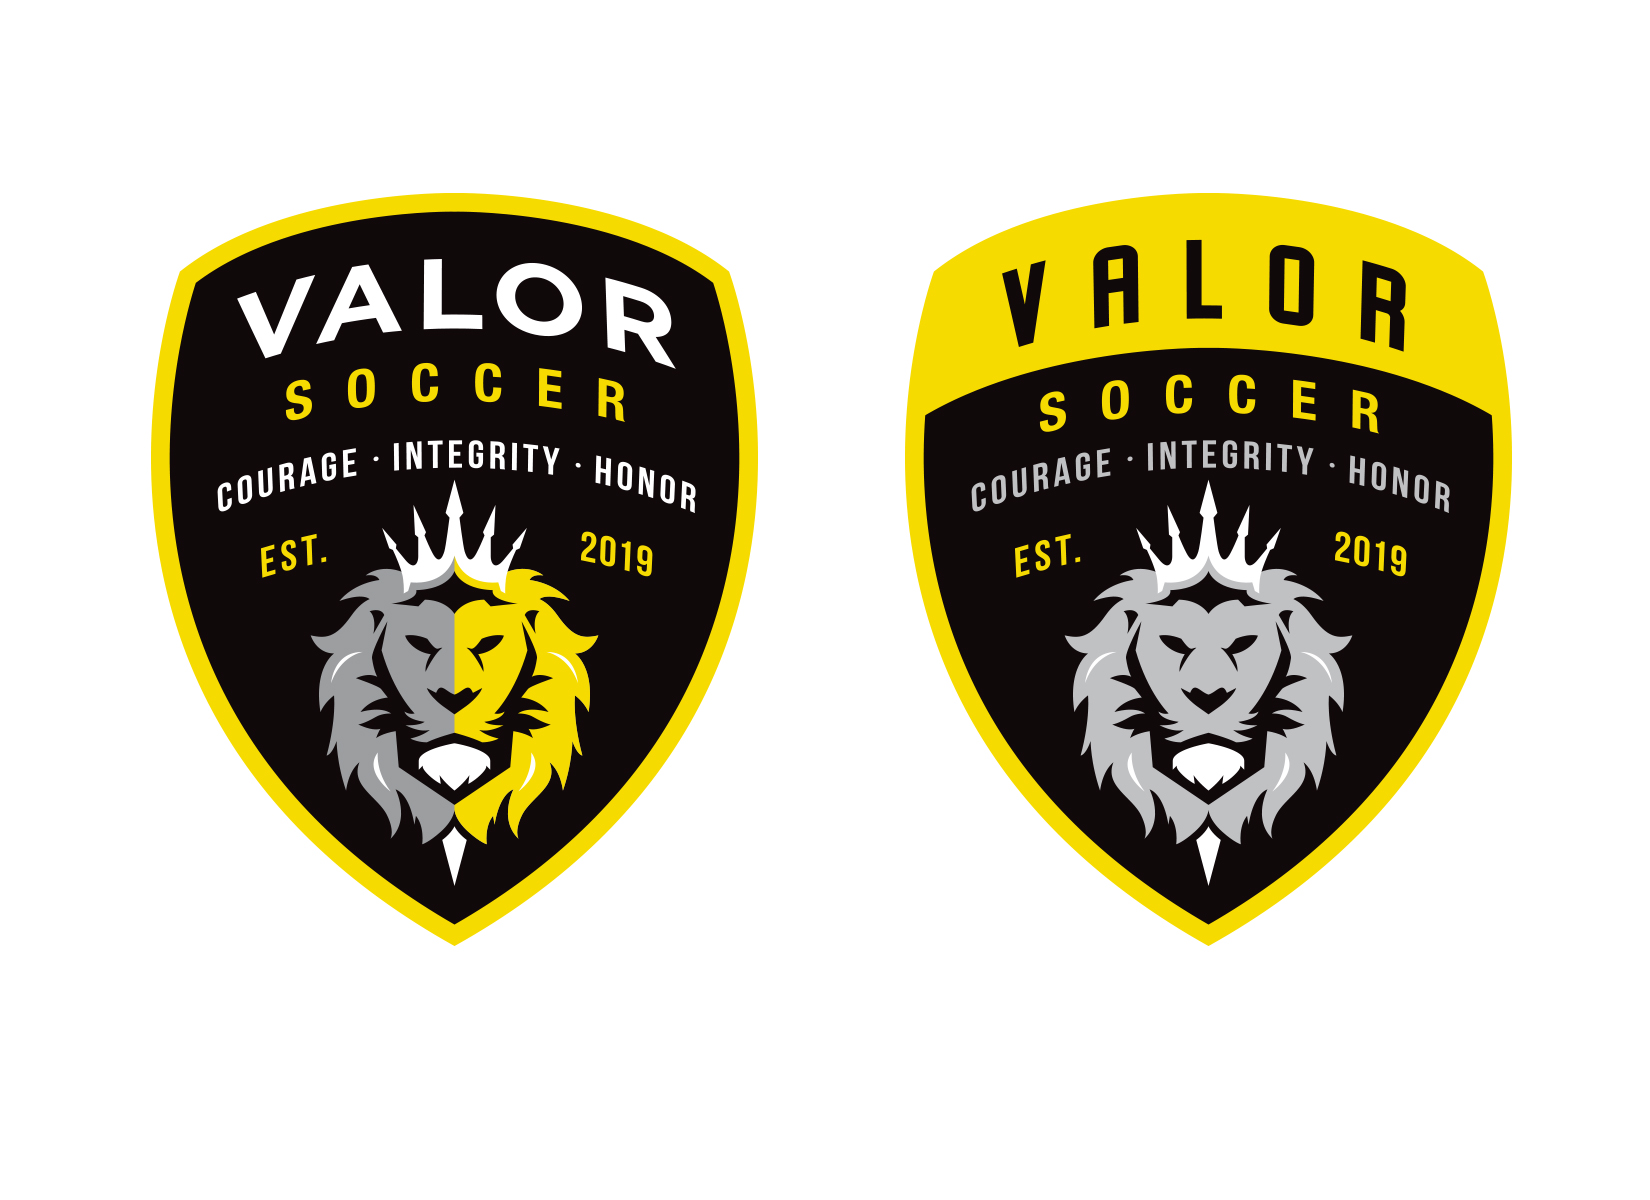 valor-custom-soccer-crest-designs-by-jordan-fretz.jpg